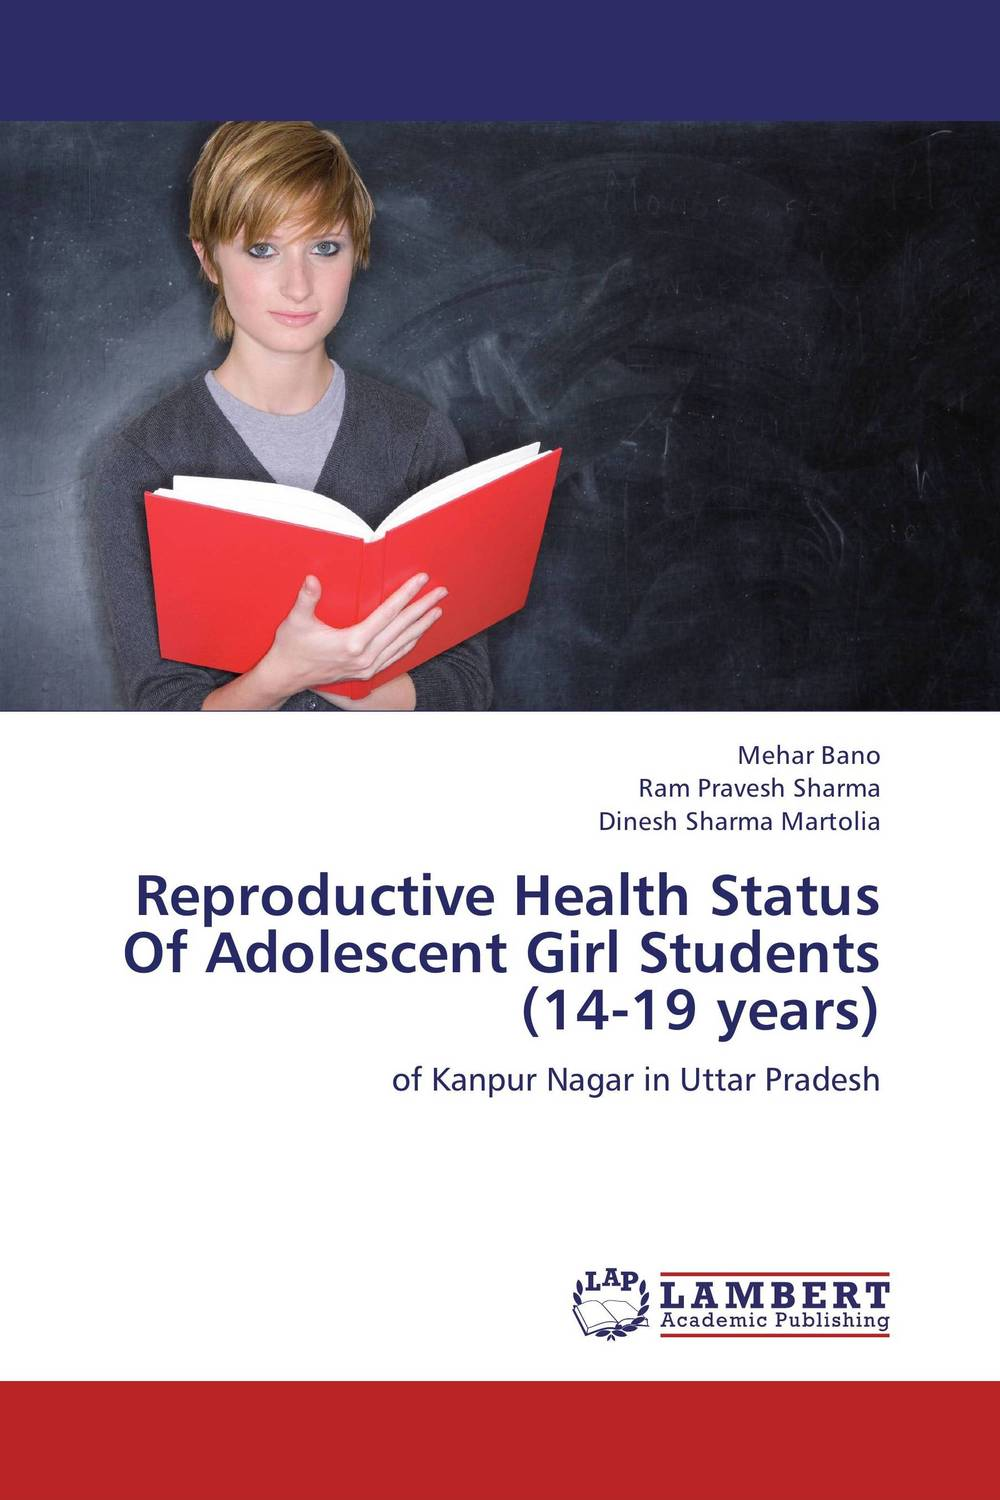 Reproductive Health Status Of Adolescent Girl Students (14-19 years) saradha ramadas effect of health product on selected anaemic adolescent girls